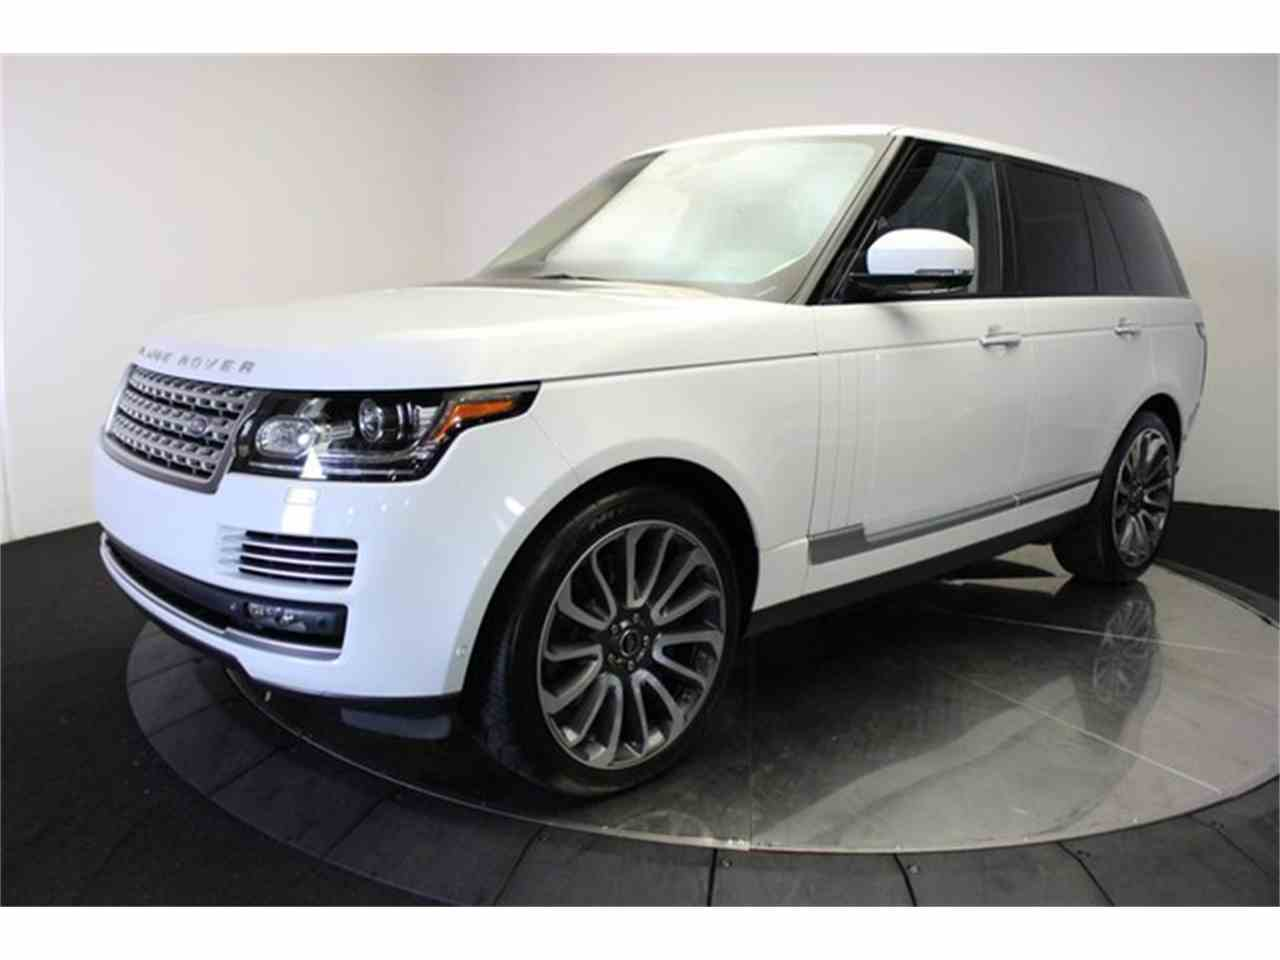 Large Picture of 2013 Range Rover - $73,888.00 - KHXU